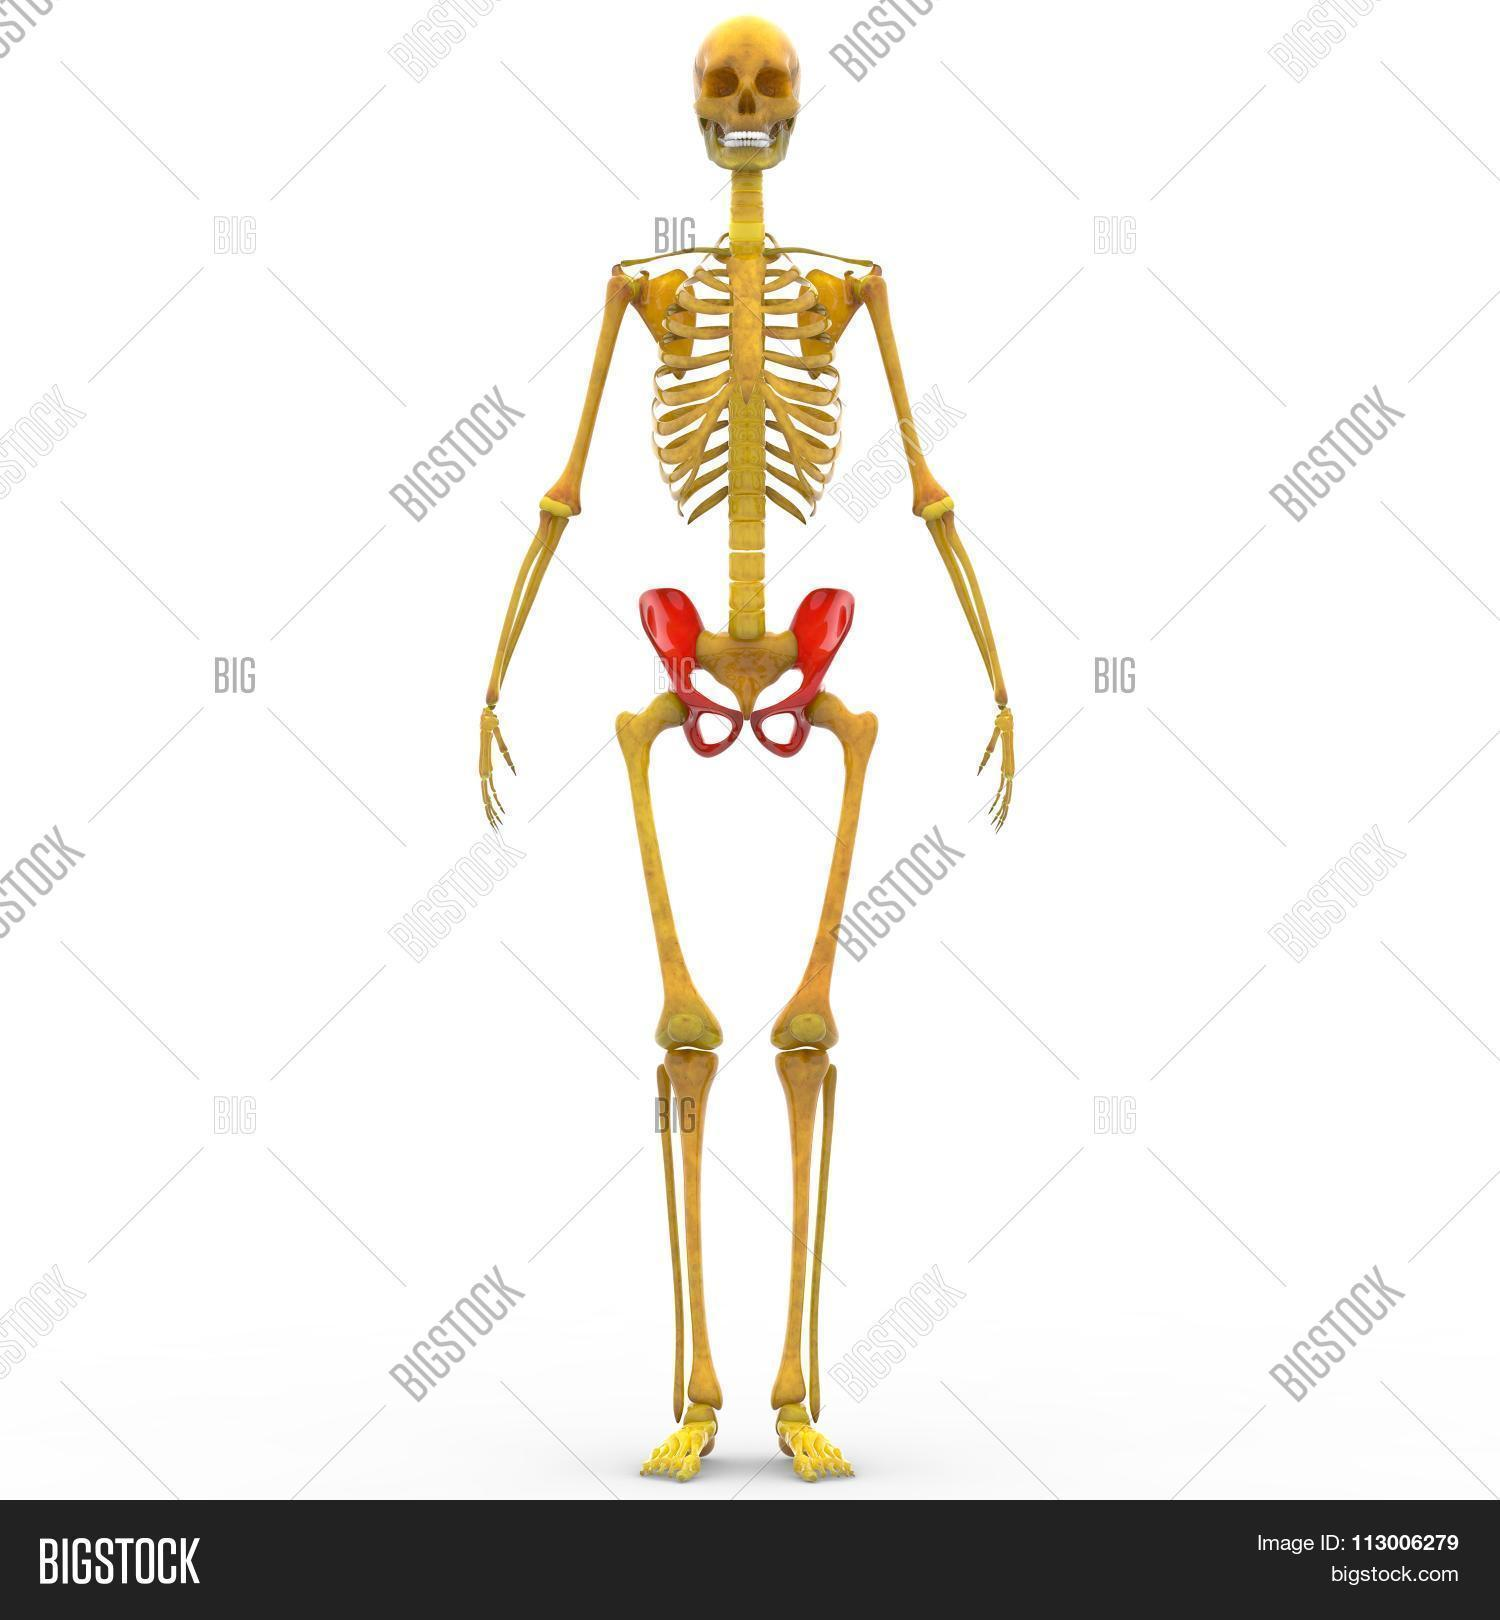 Human Skeleton Ilium Image Photo Free Trial Bigstock